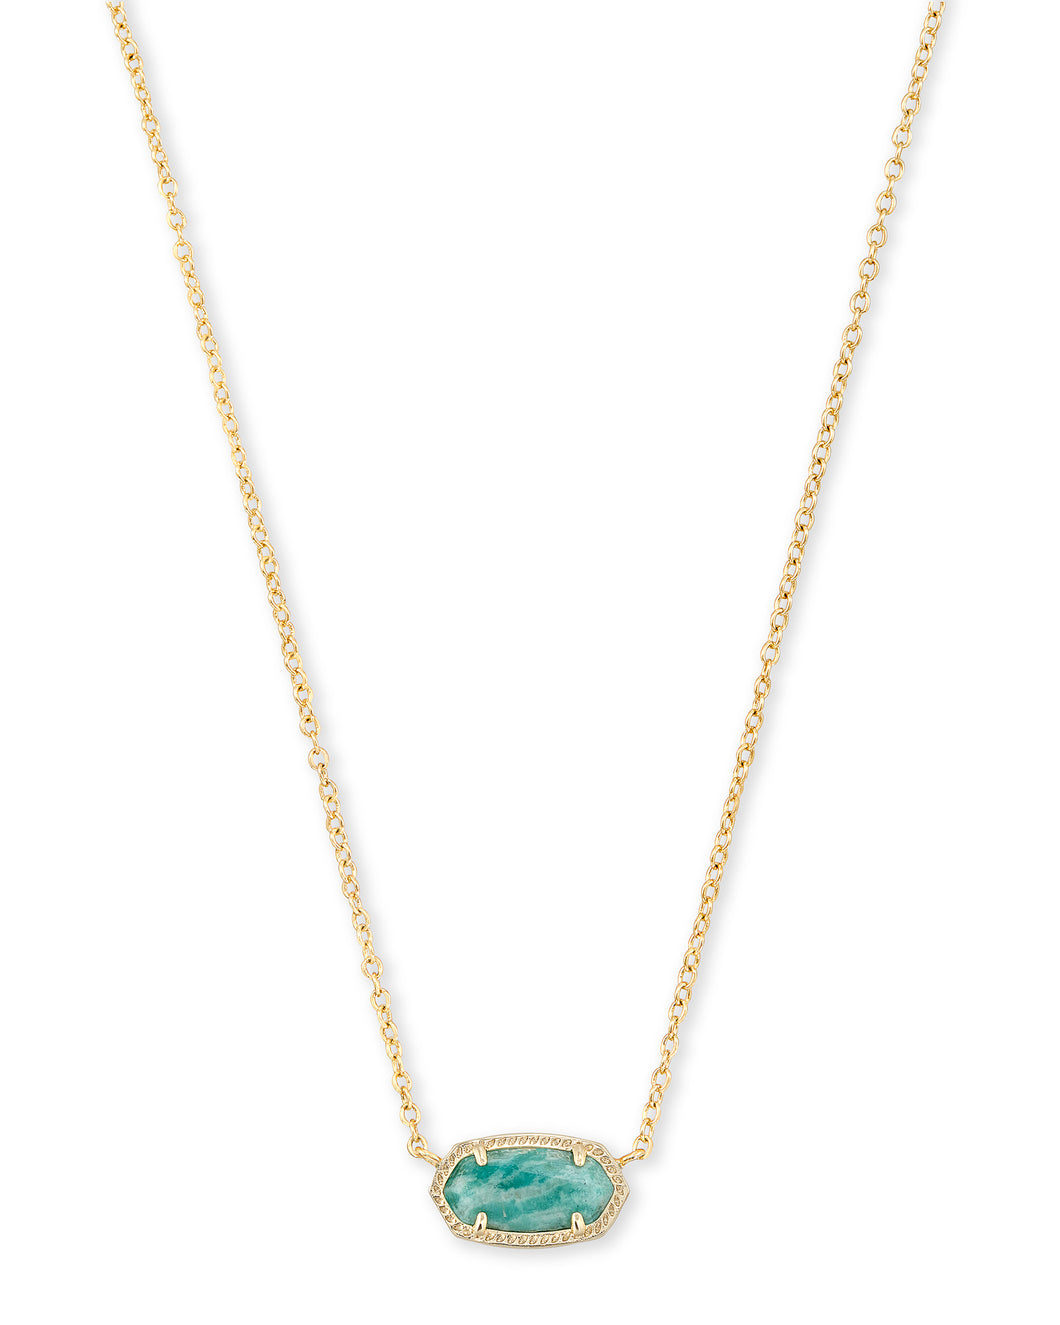 Kendra Scott Pendant Necklace In Dark Teal Amazonite